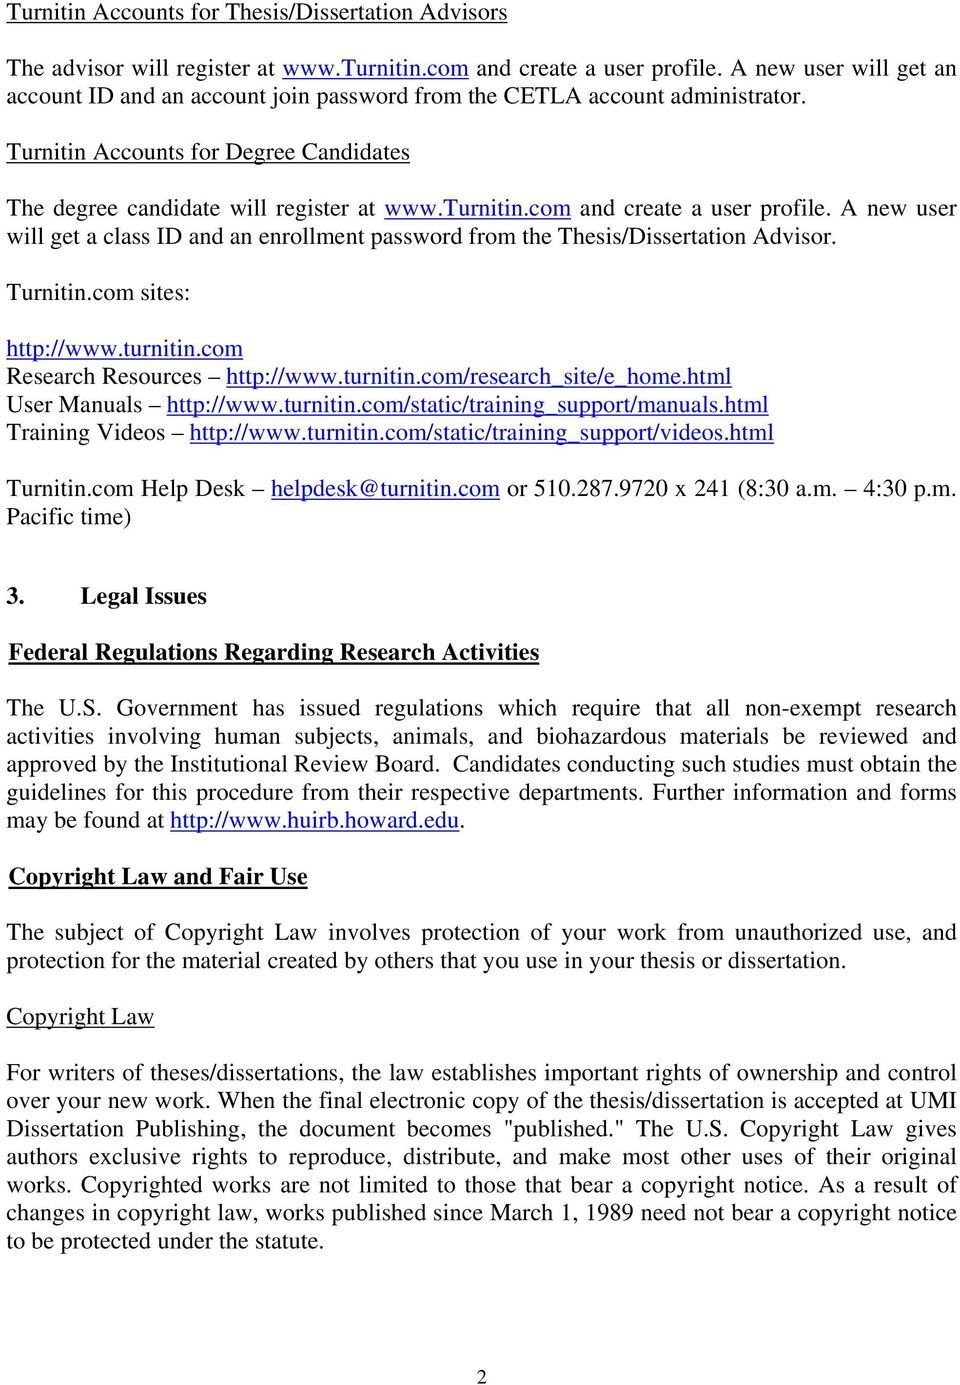 dissertation copyrighted materials I attest that the text of this electronic document is the final version of my dissertation, incorporating all corrections and other emendations requested by my.